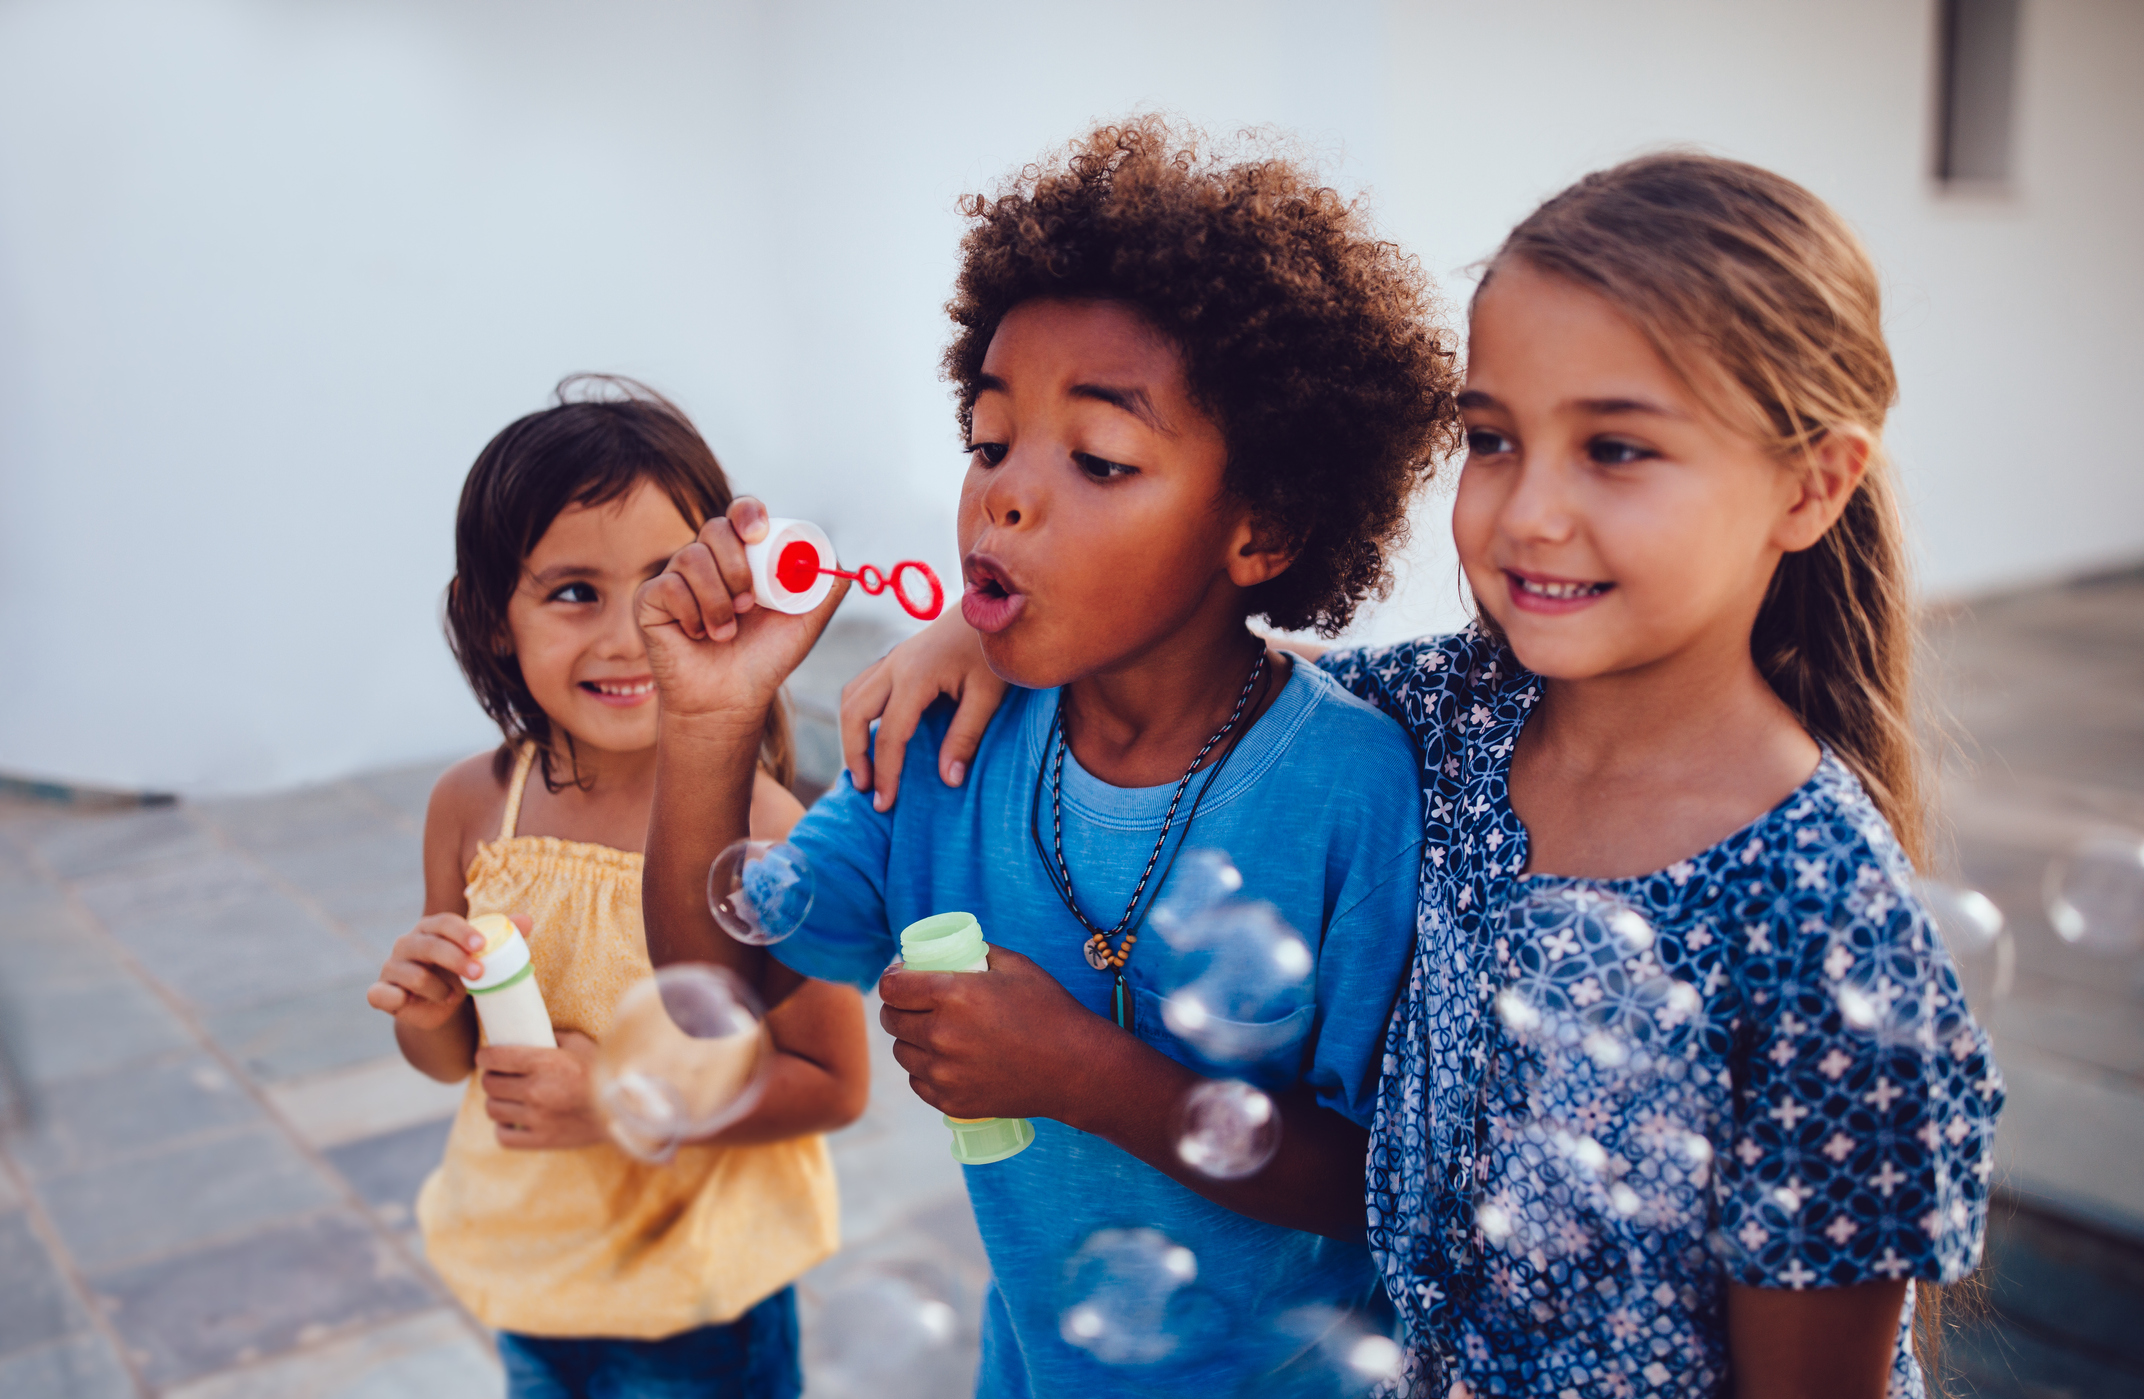 Group of happy children outside playing and blowing bubbles.